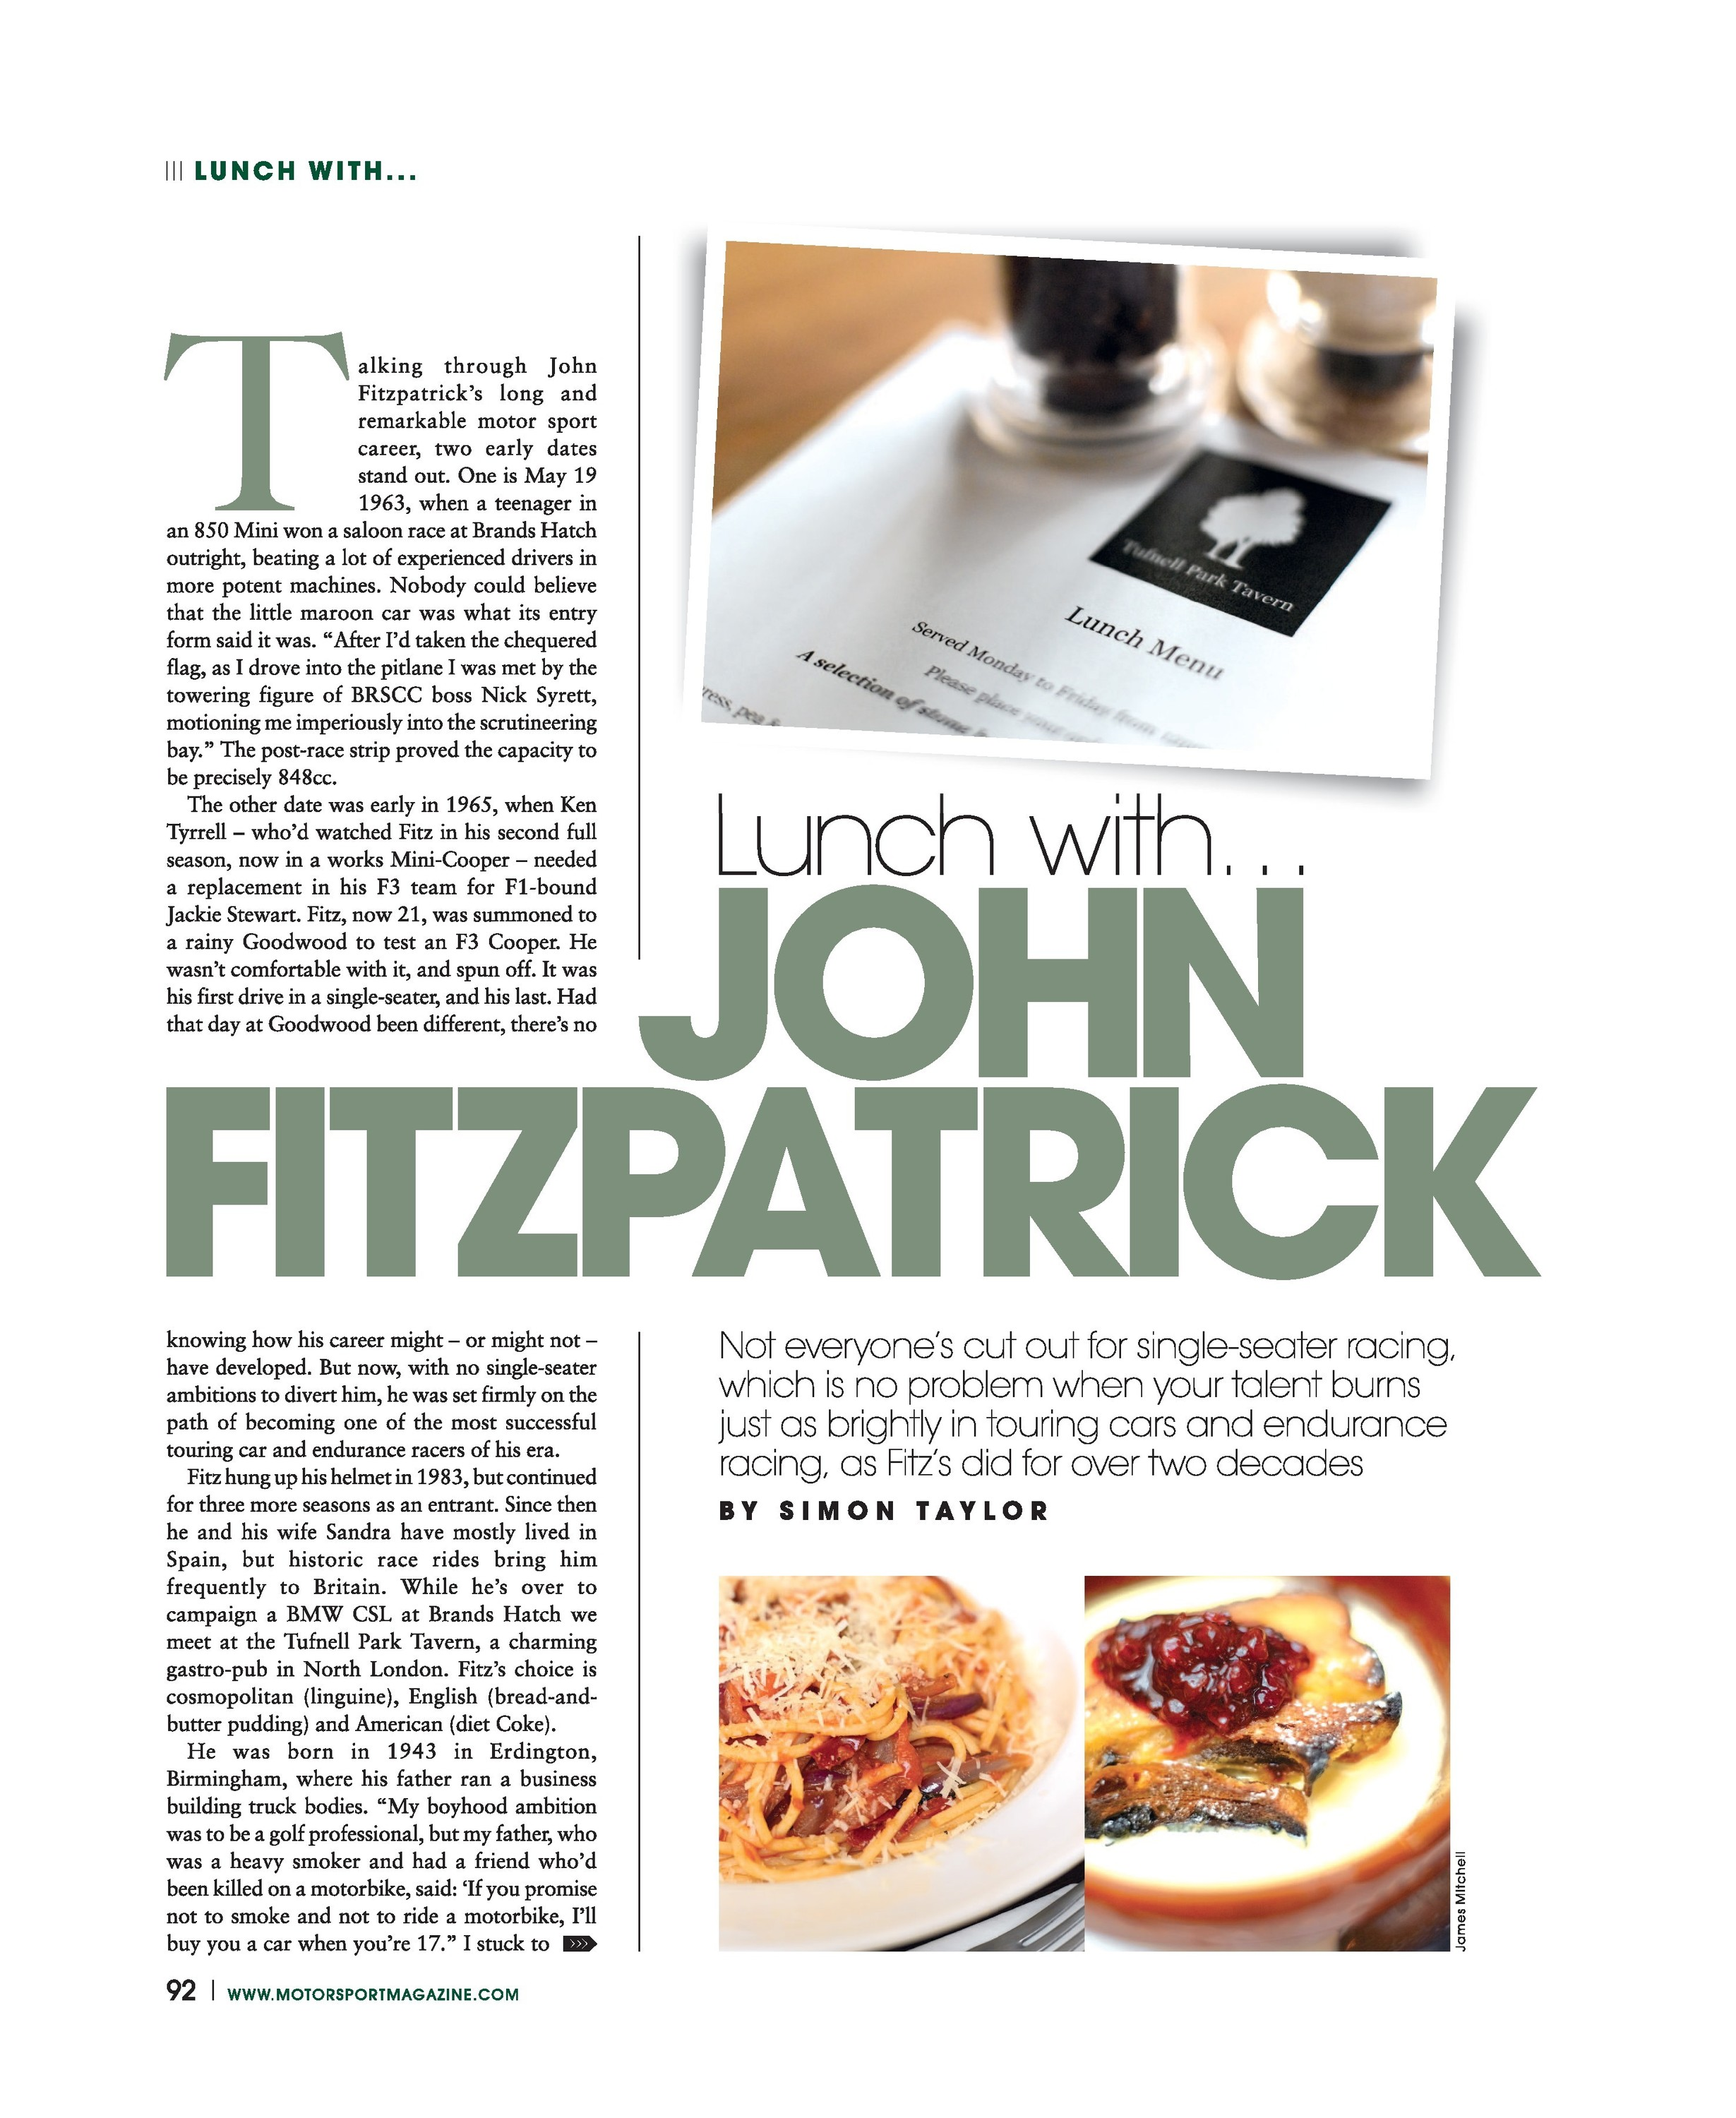 Lunch with…John Fitzpatrick image